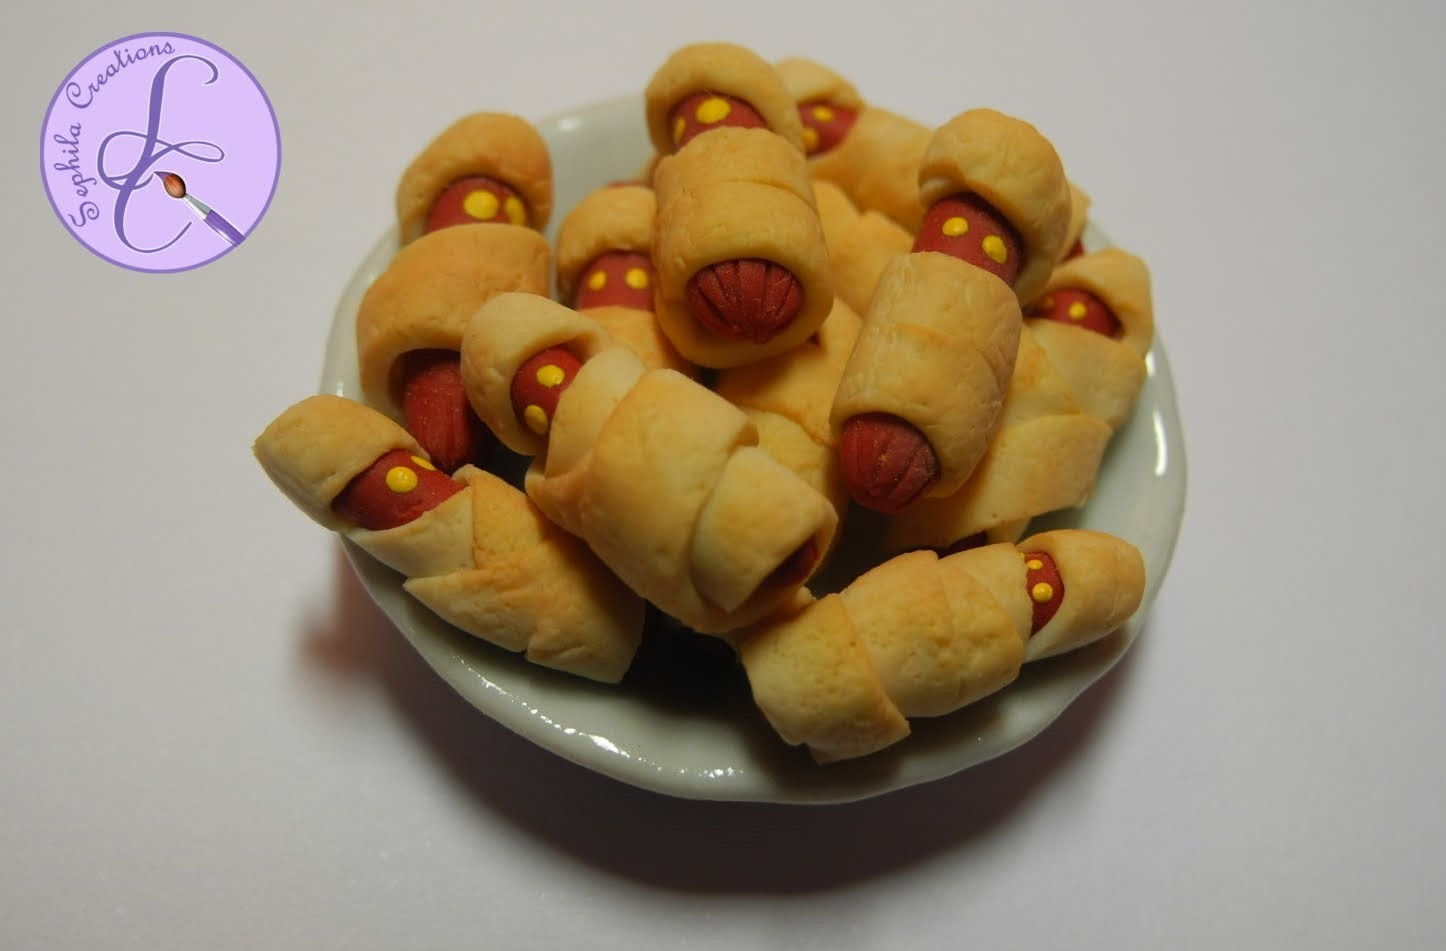 Tutorial: Hot-Dog mummia in fimo per Halloween (hot-dog mummies in polymer clay) [eng-sub]